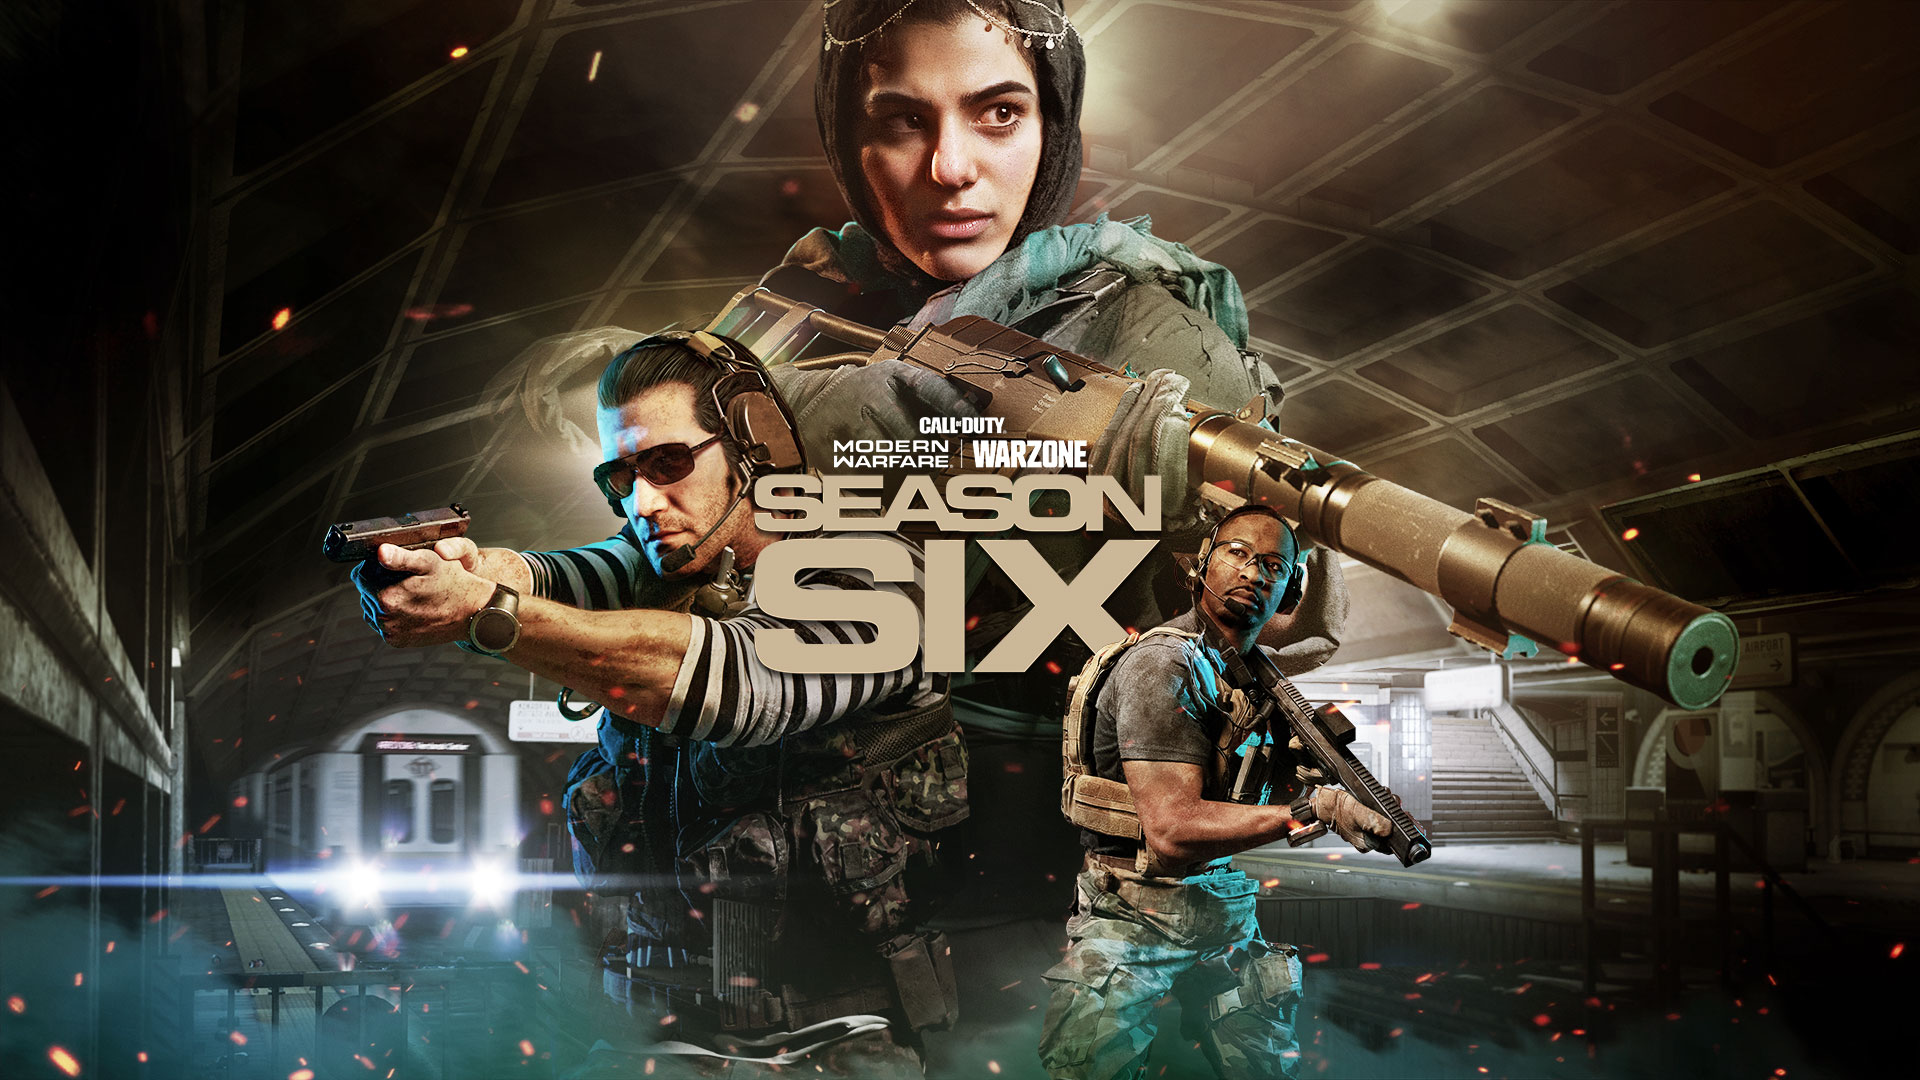 Incoming Reinforcements Warzone Subway System Return Of Farah And Nikolai Highlight A Packed Season Six Of Modern Warfare